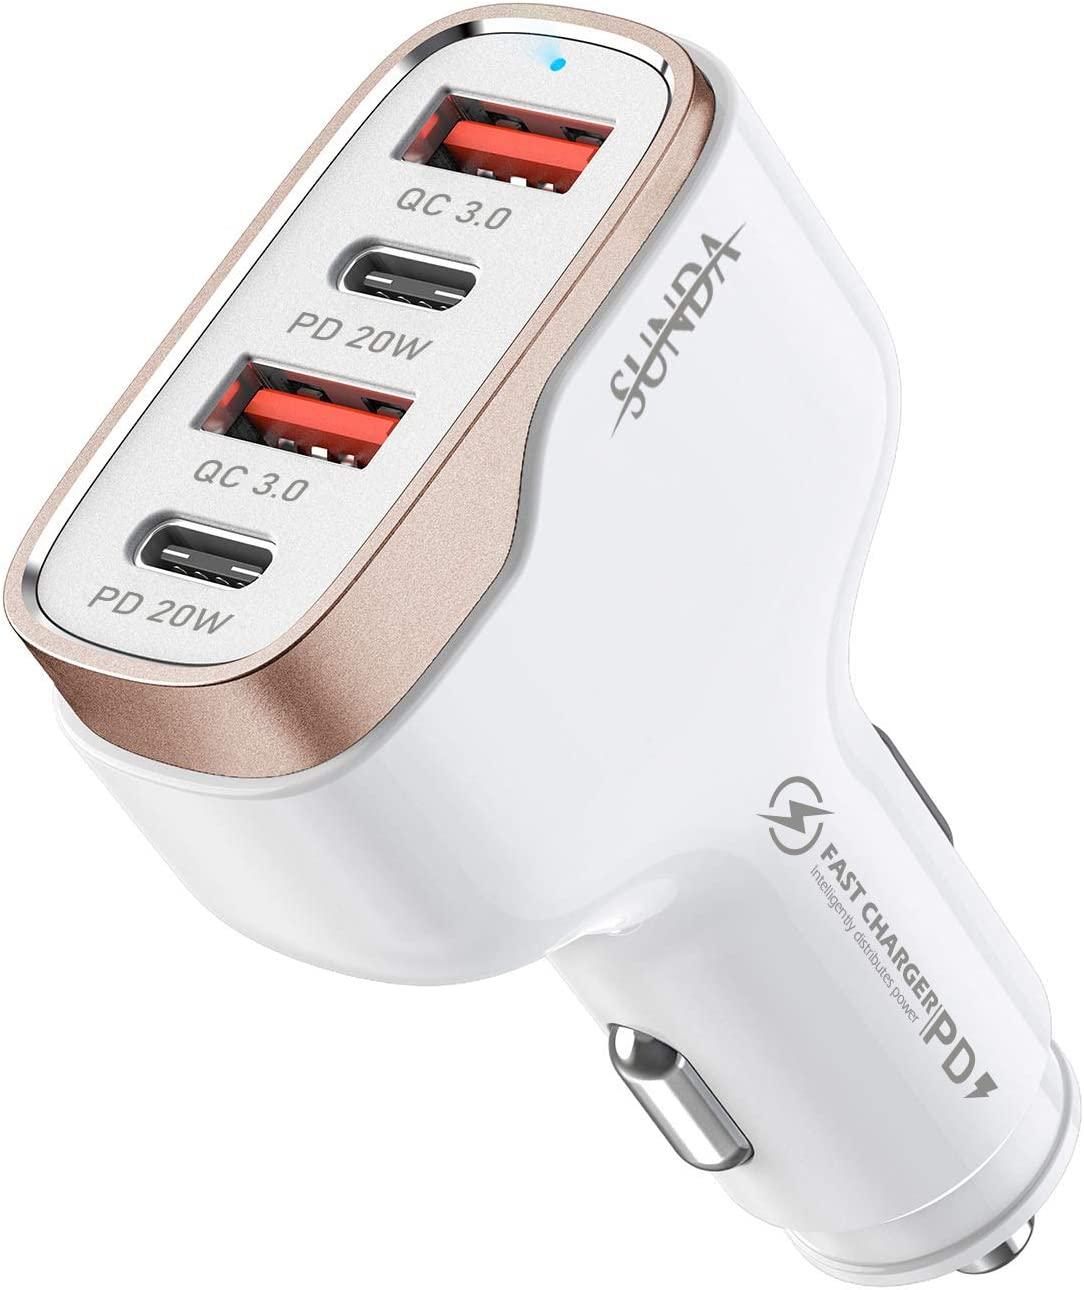 SUNDA 40W USB C Fast Car Charger, 4-Ports Car Charger Adapter, Dual Type C PD 20W Compatible with iPhone12/11 Pro/Max/iPhone11/Pad Pro/Galaxy/Samsung, Dual USB-A 18W QC3.0 for Android